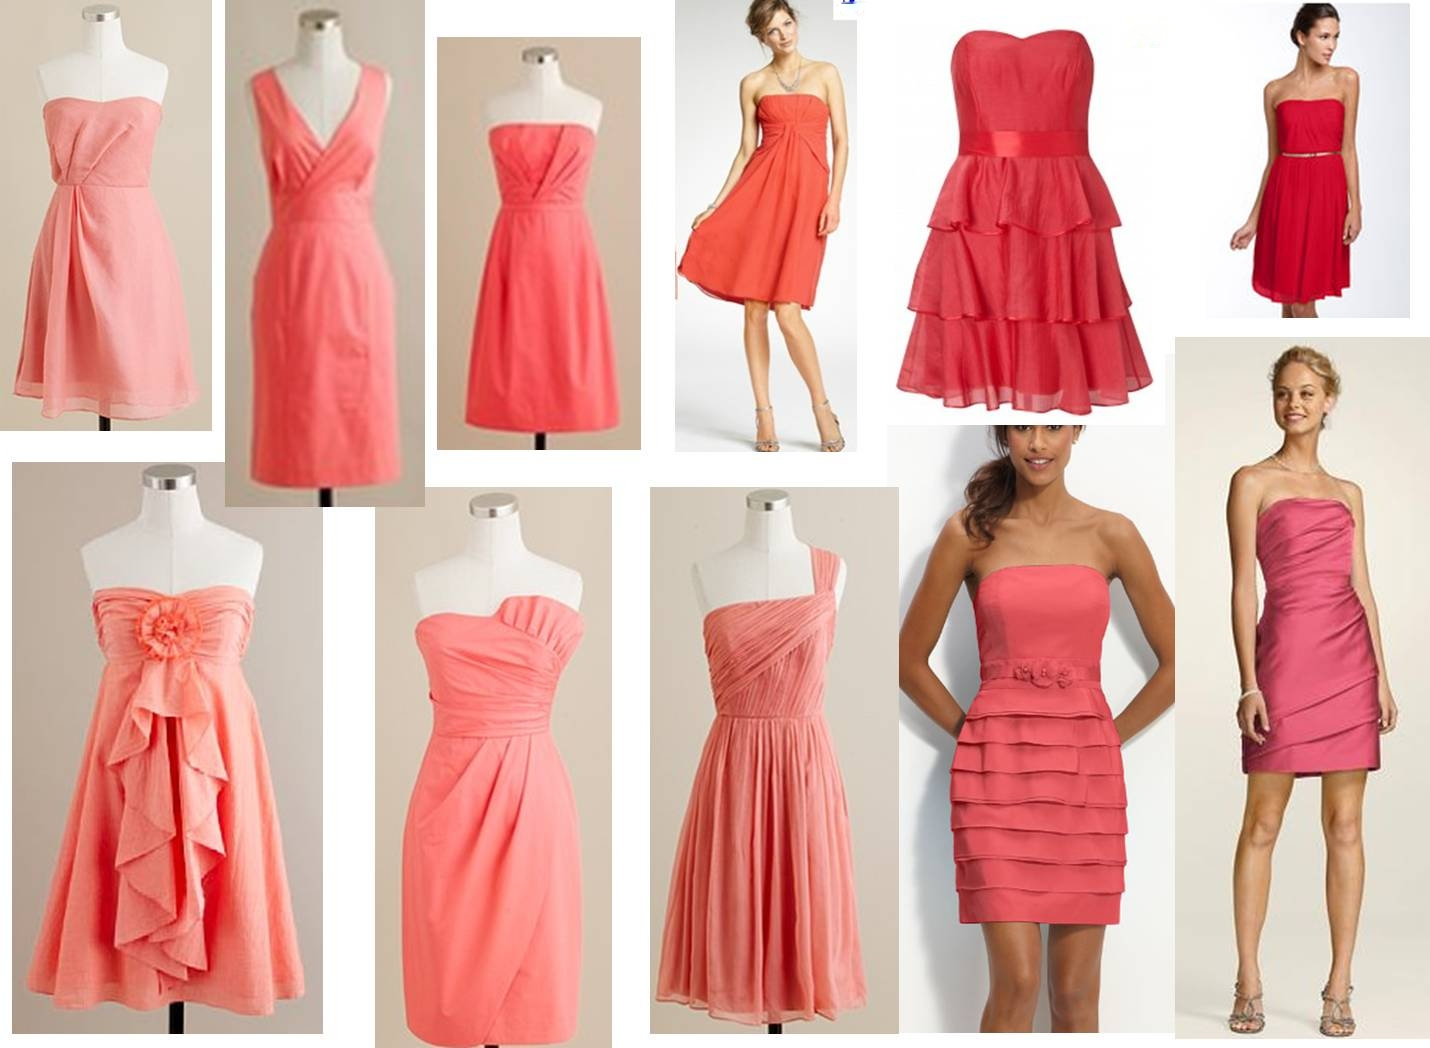 wedding wednesday mismatched coral coral dresses for wedding Pinky coral in color 2 Knee length 3 Sleeveless or strapless 4 Not jersey knit 5 Not slutty 6 Something you feel comfortable and pretty in